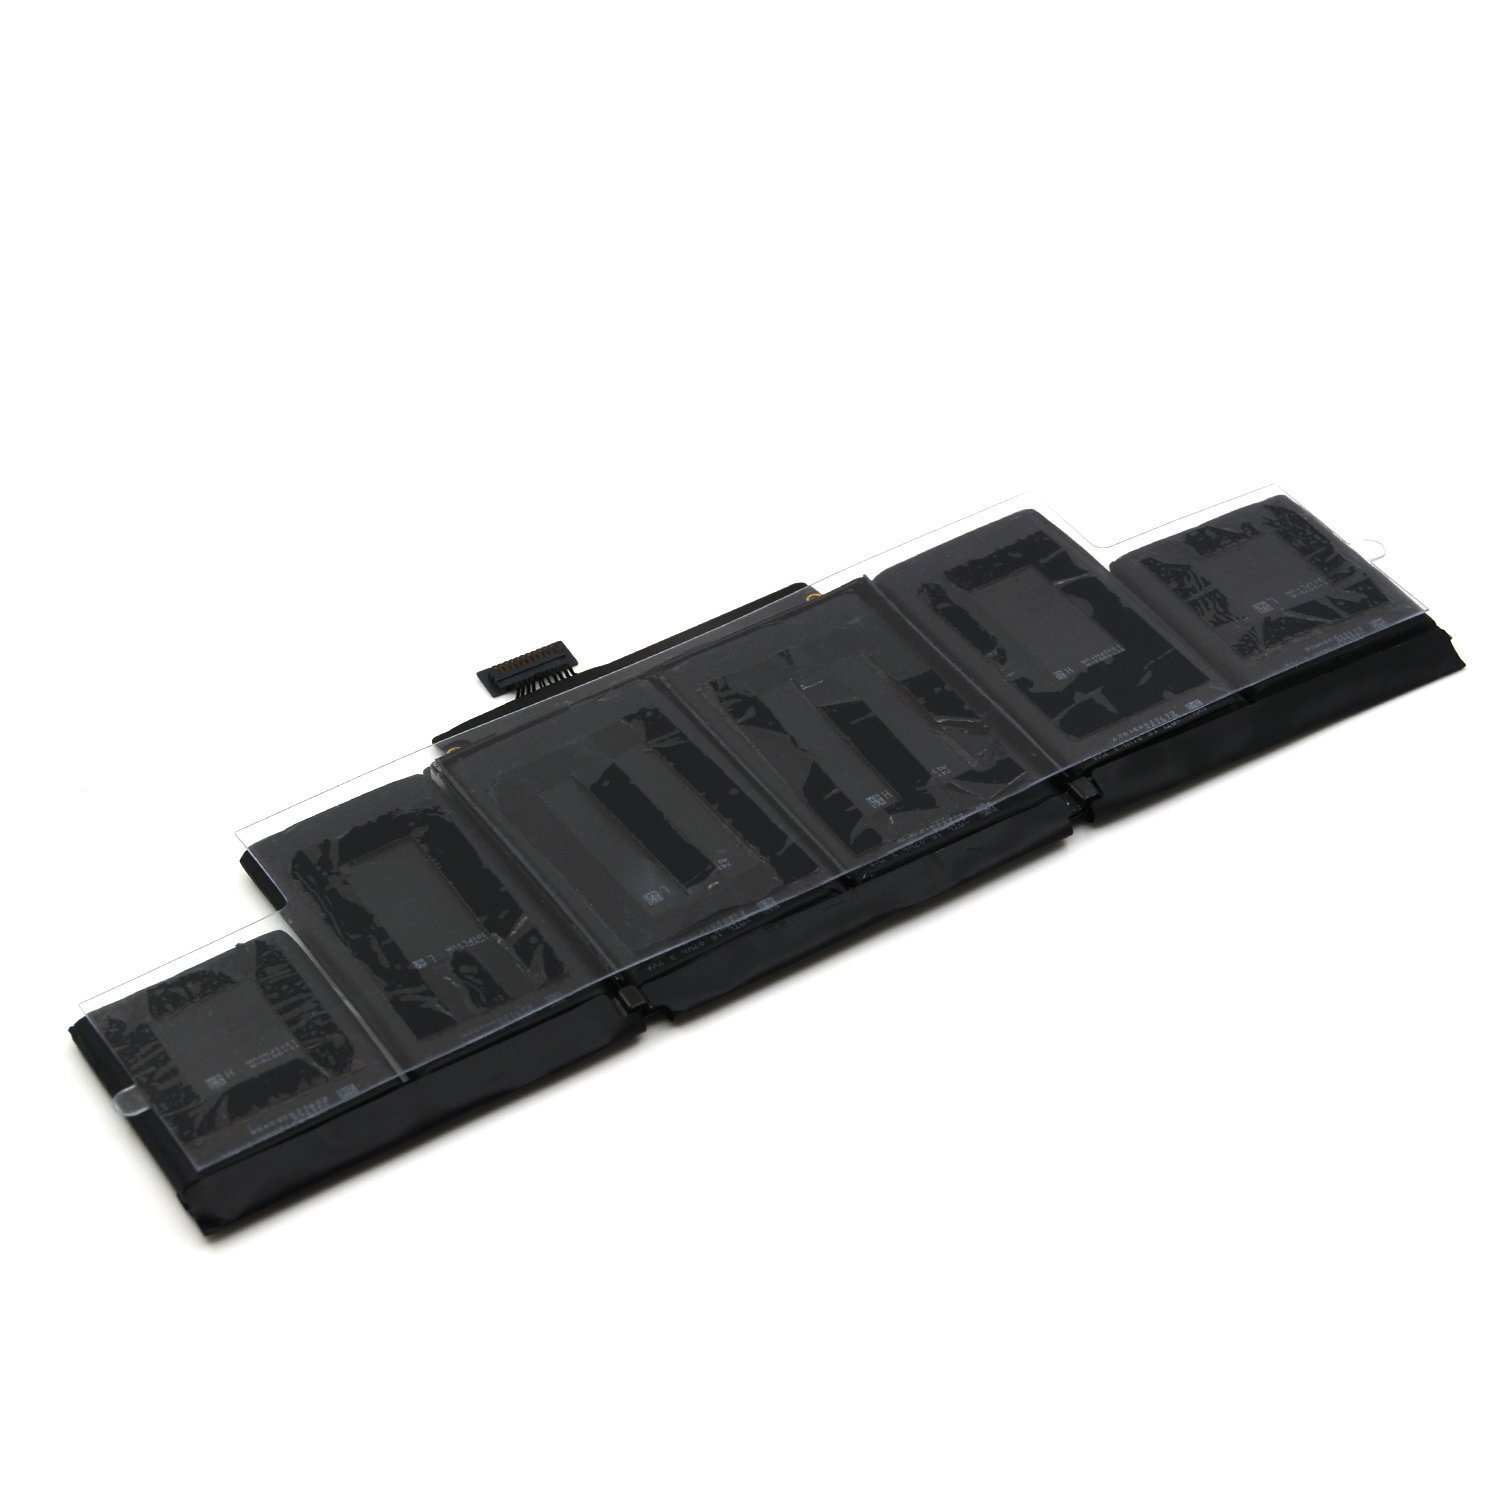 Temark New A1417 Laptop Battery for MacBook Pro 15 Inch Retina A1398 (Only fit 2012 Early 2013 Version),fit MC975LL/A MC976LL/A ME665LL/A ME664LL/A MD831LL/A by Temark (Image #3)